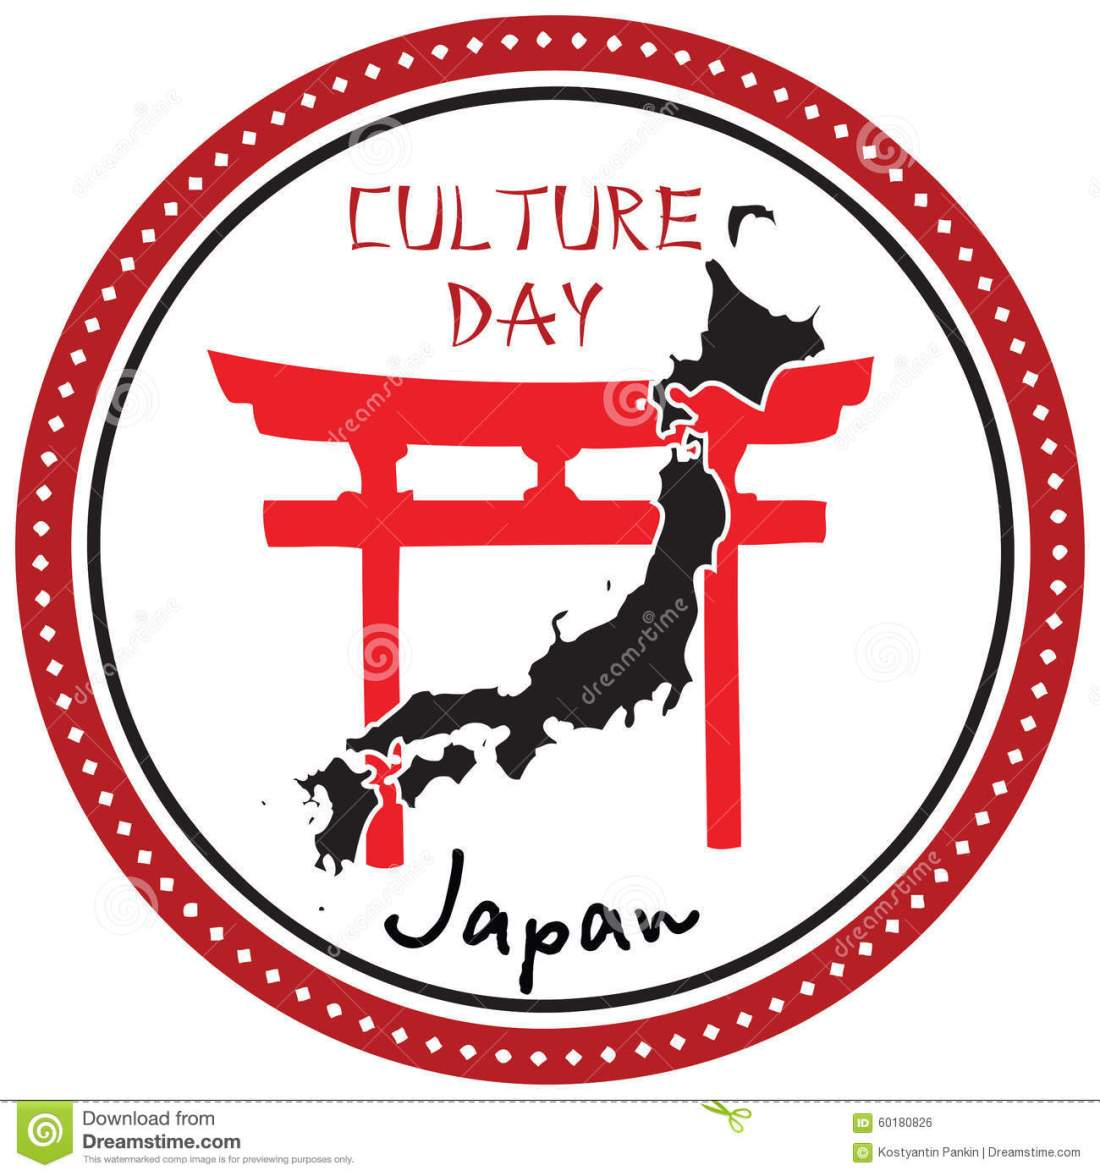 culture-day-japan-event-national-importance-holiday-60180826